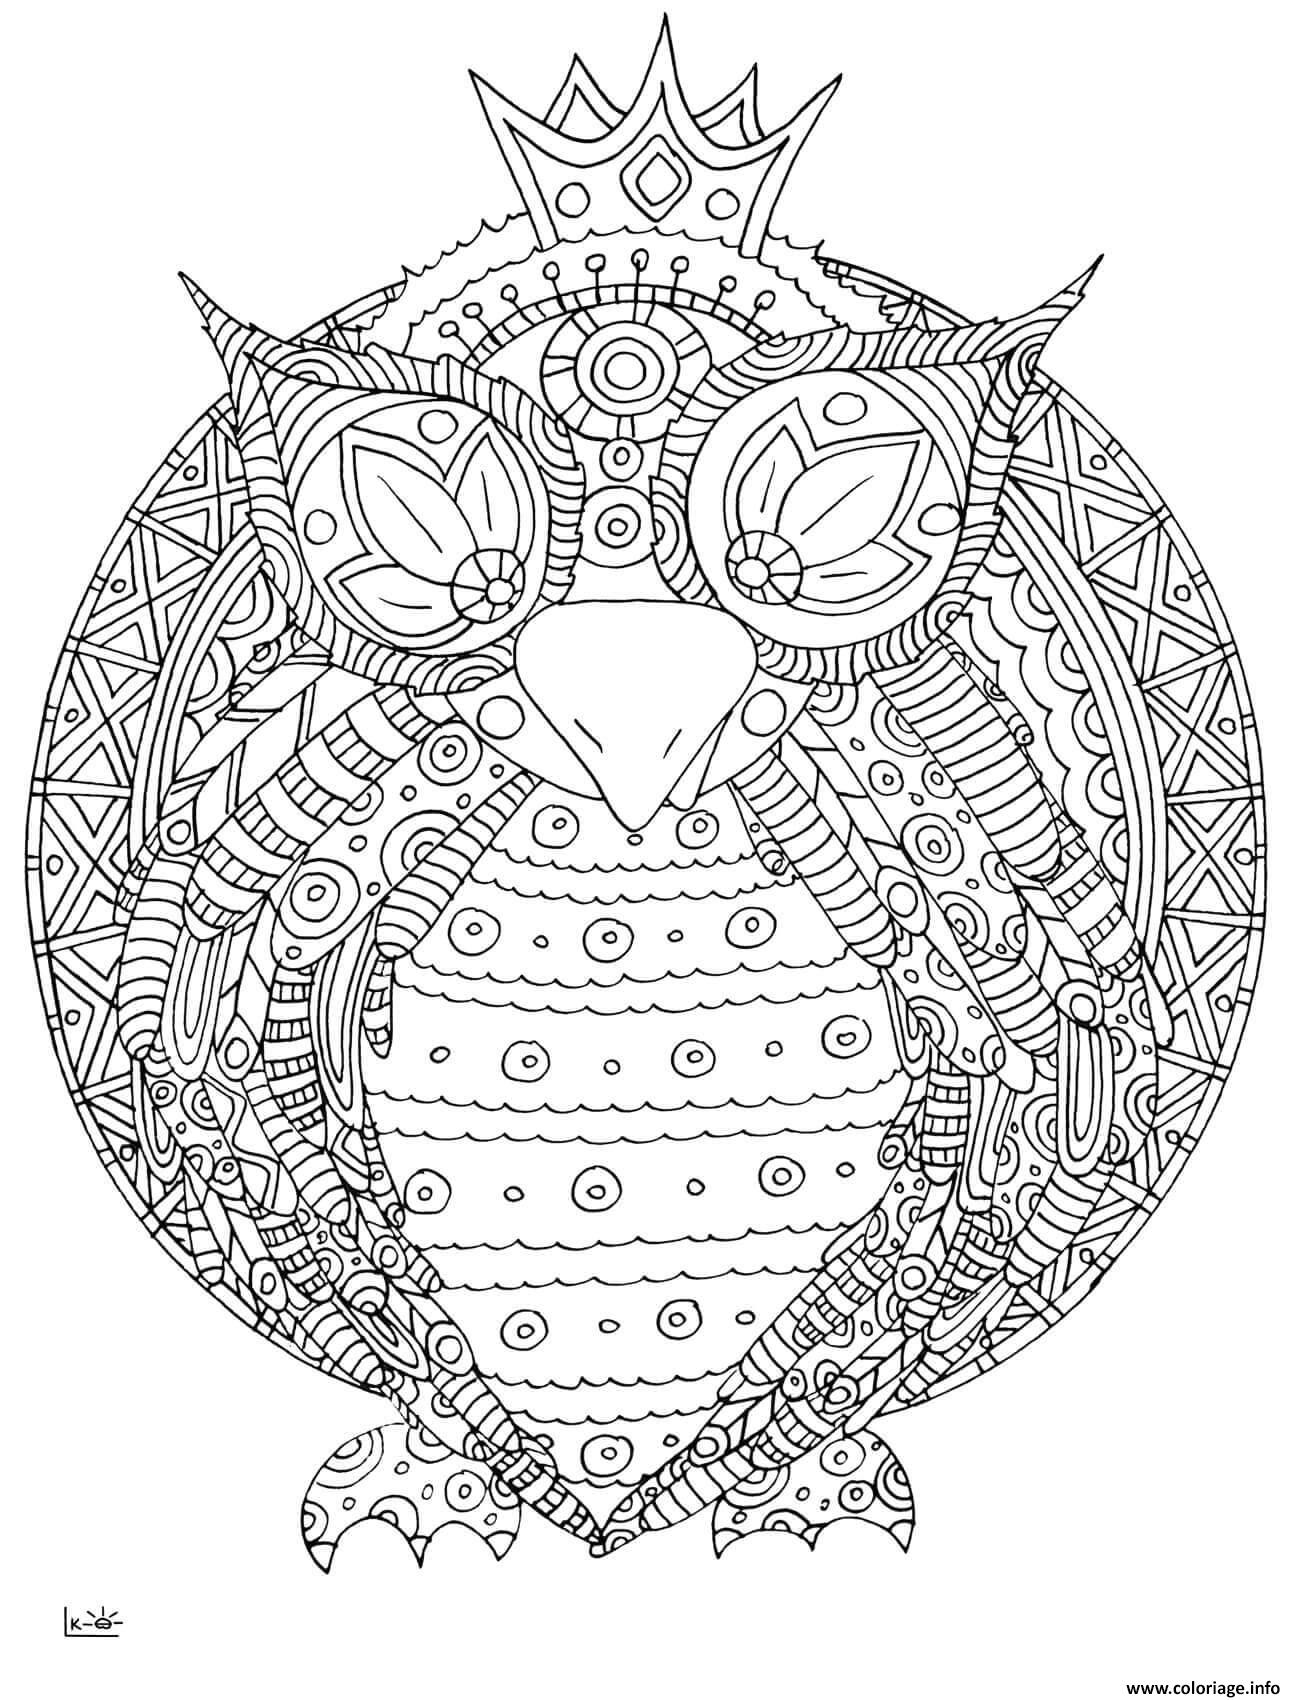 Dessin owl with tribal pattern adulte Coloriage Gratuit à Imprimer